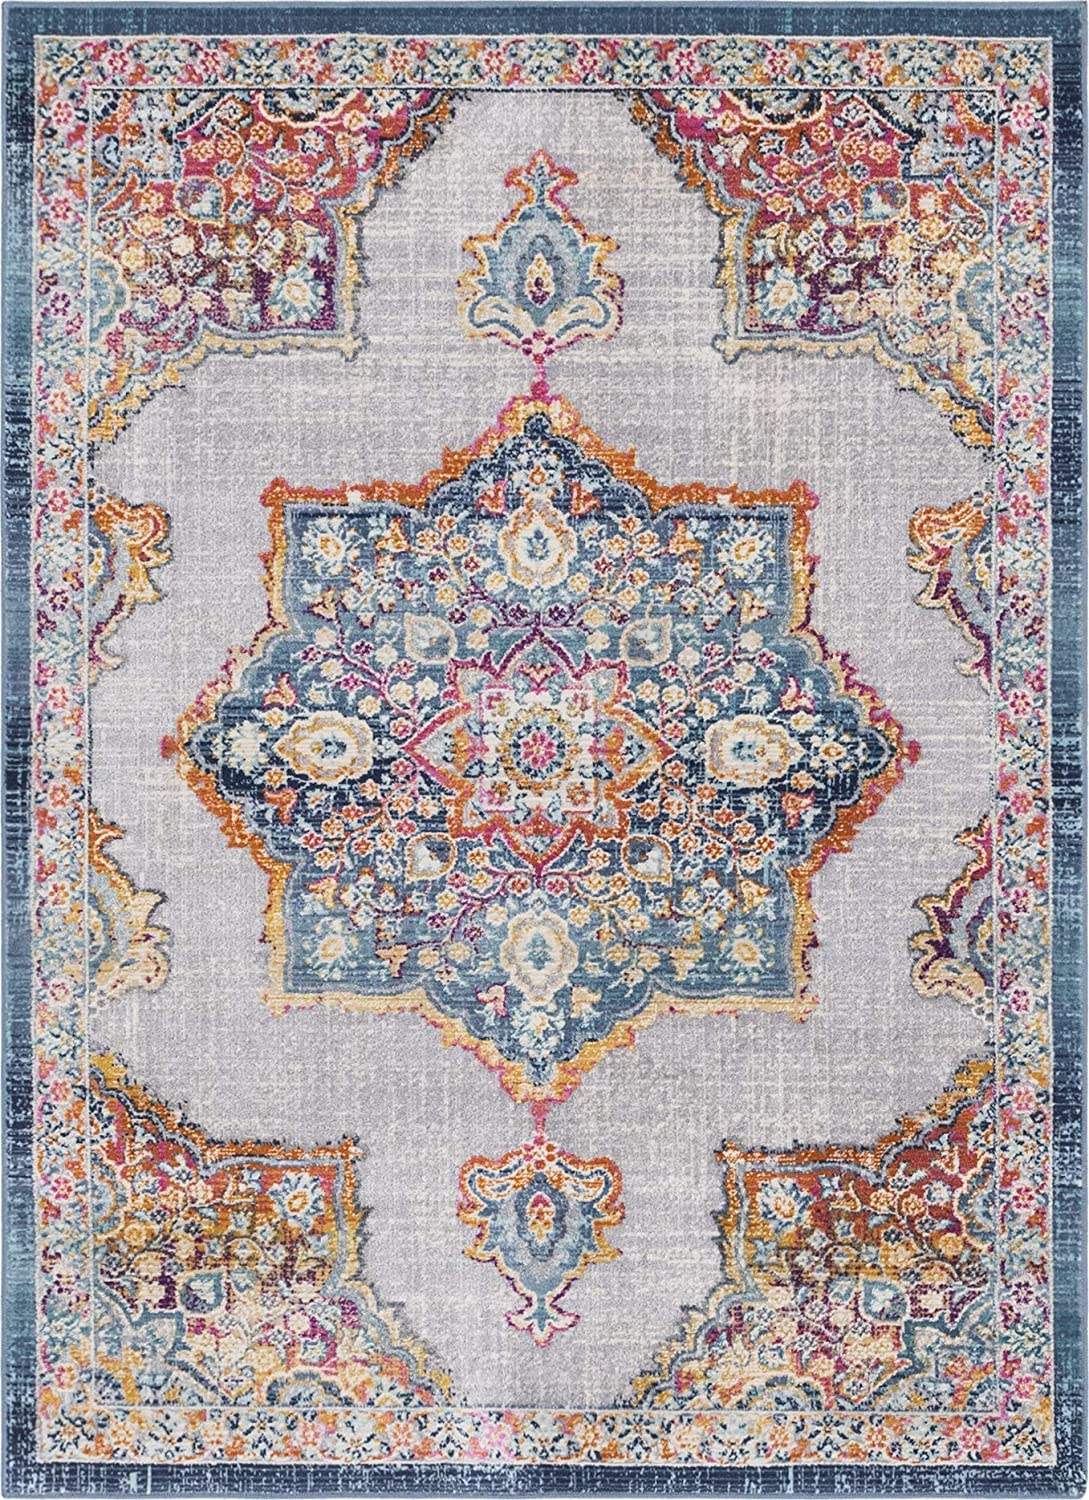 Rugs.com Budapest Collection Area Rug – 4X6 Blue Low-Pile Rug Perfect for Entryways, Kitchens, Breakfast Nooks, Accent Pieces